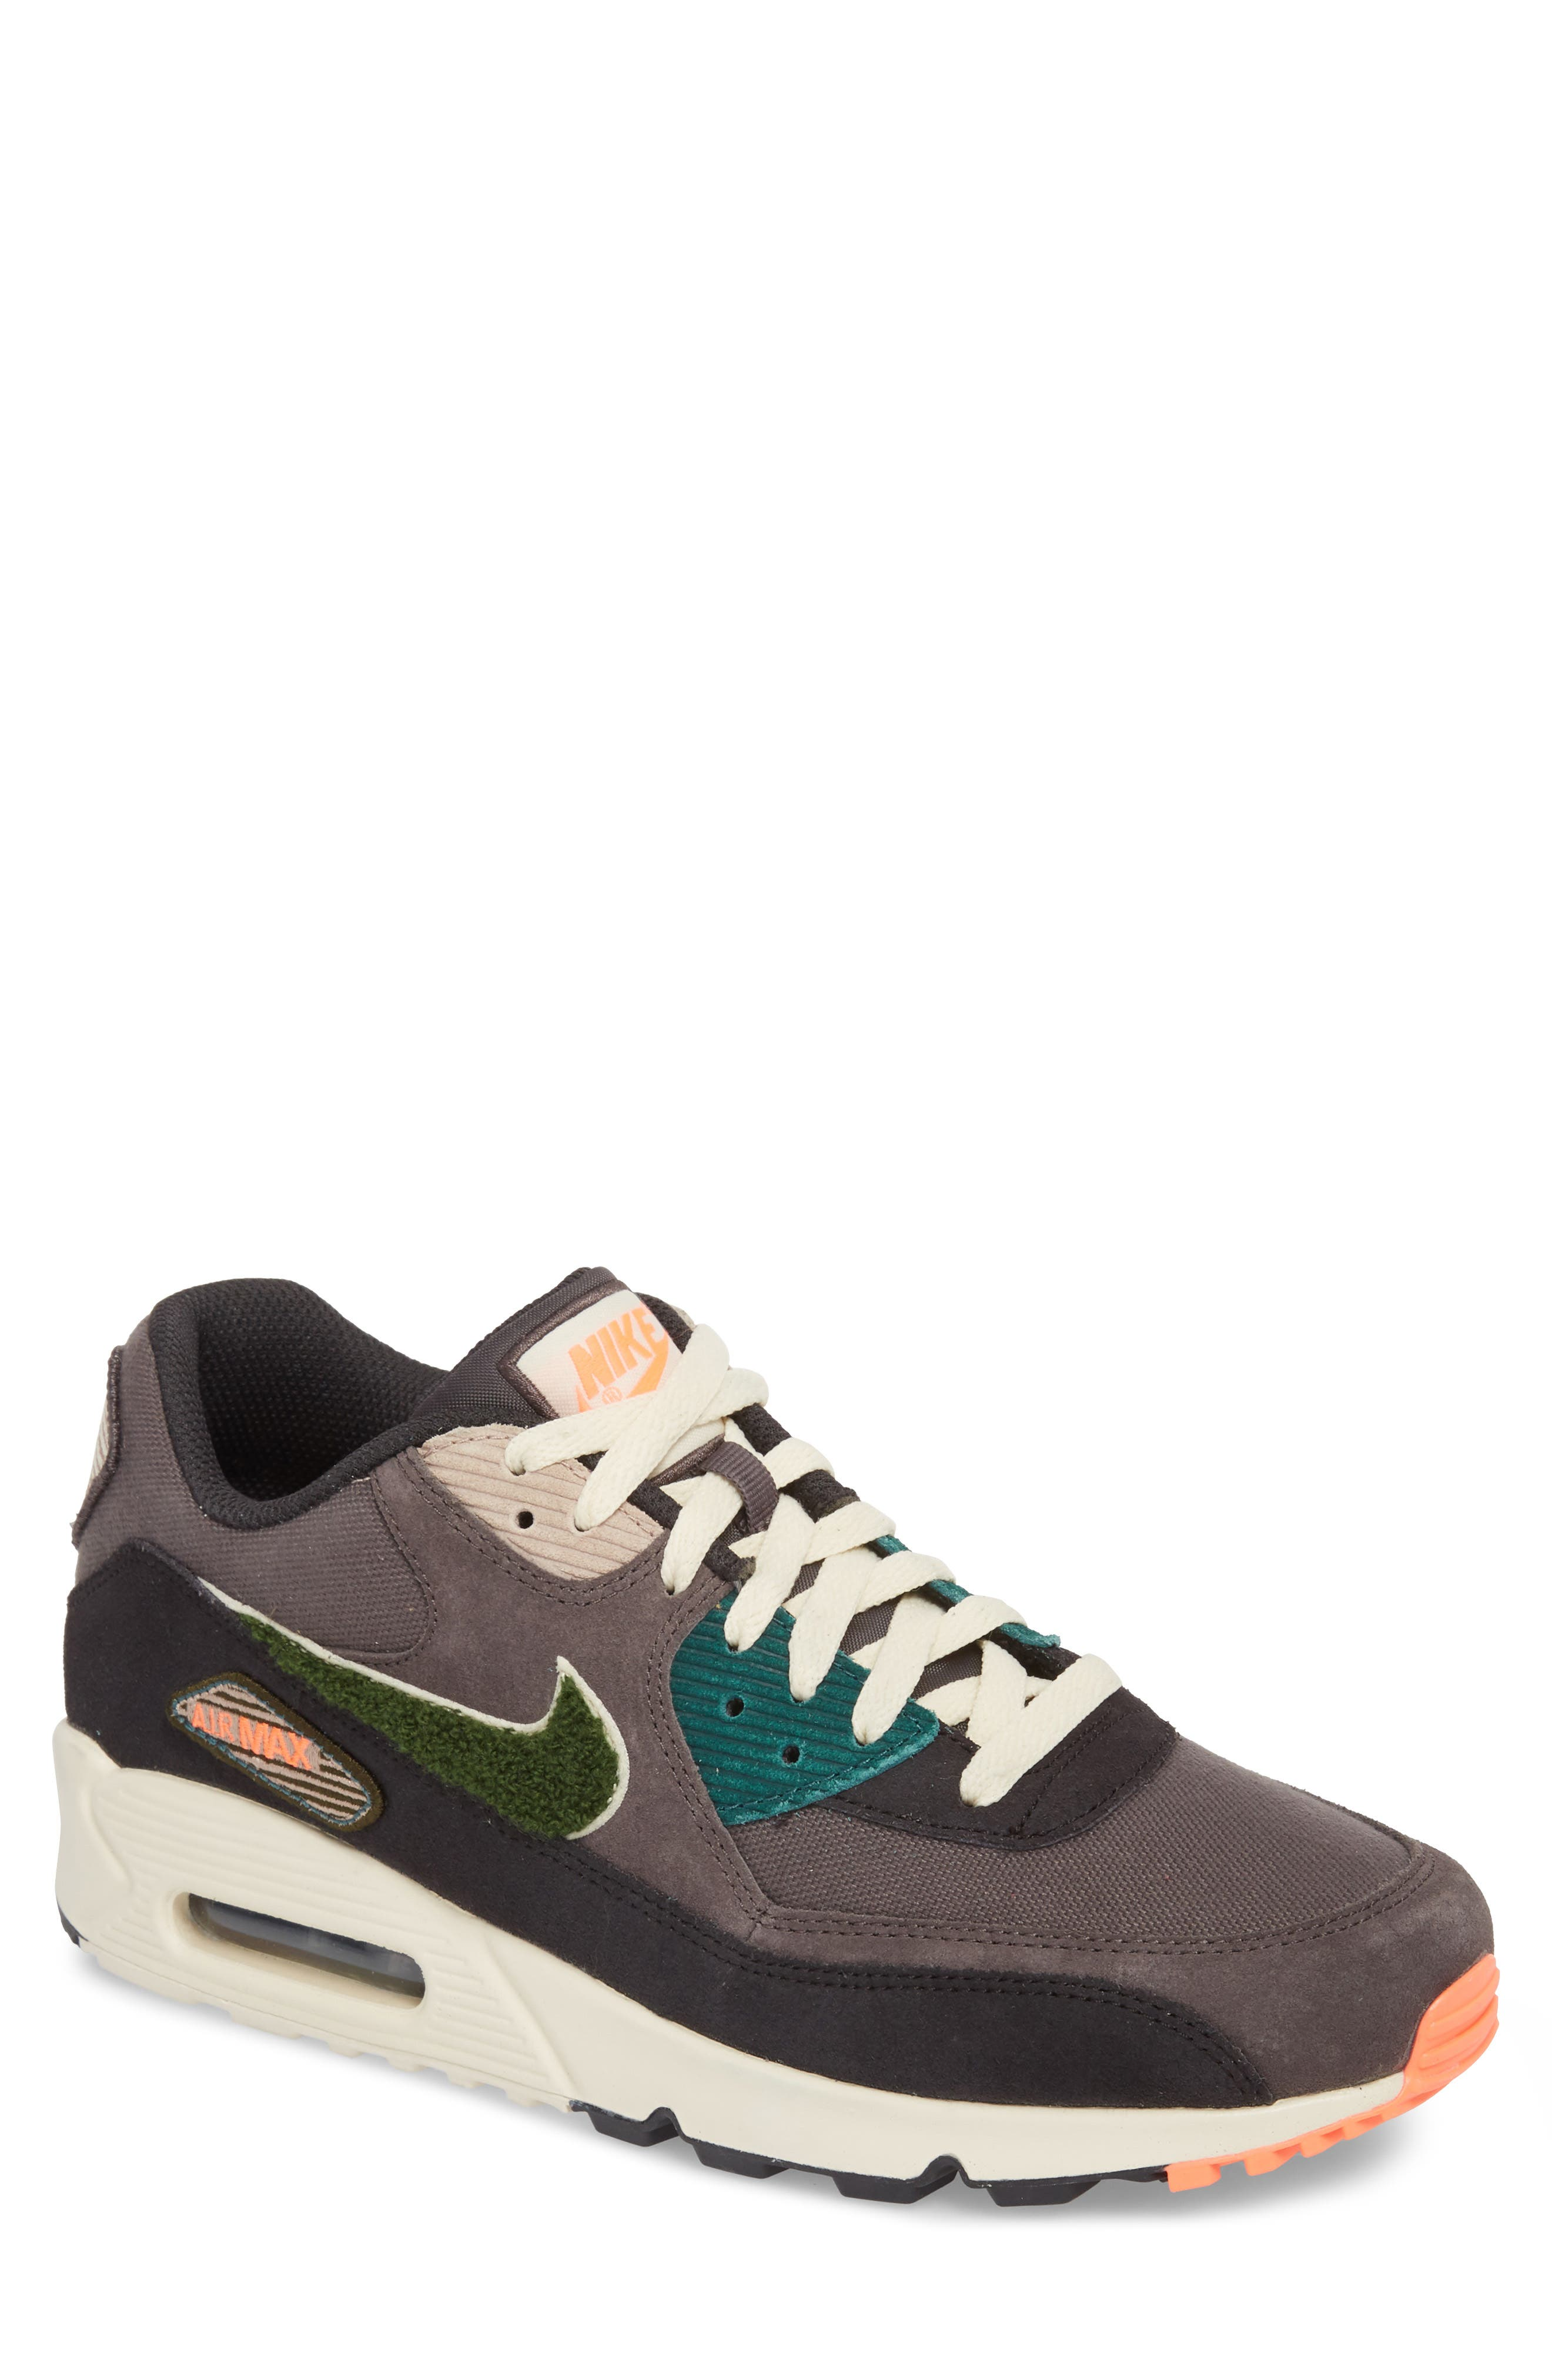 Air Max 90 Premium Sneaker,                         Main,                         color,